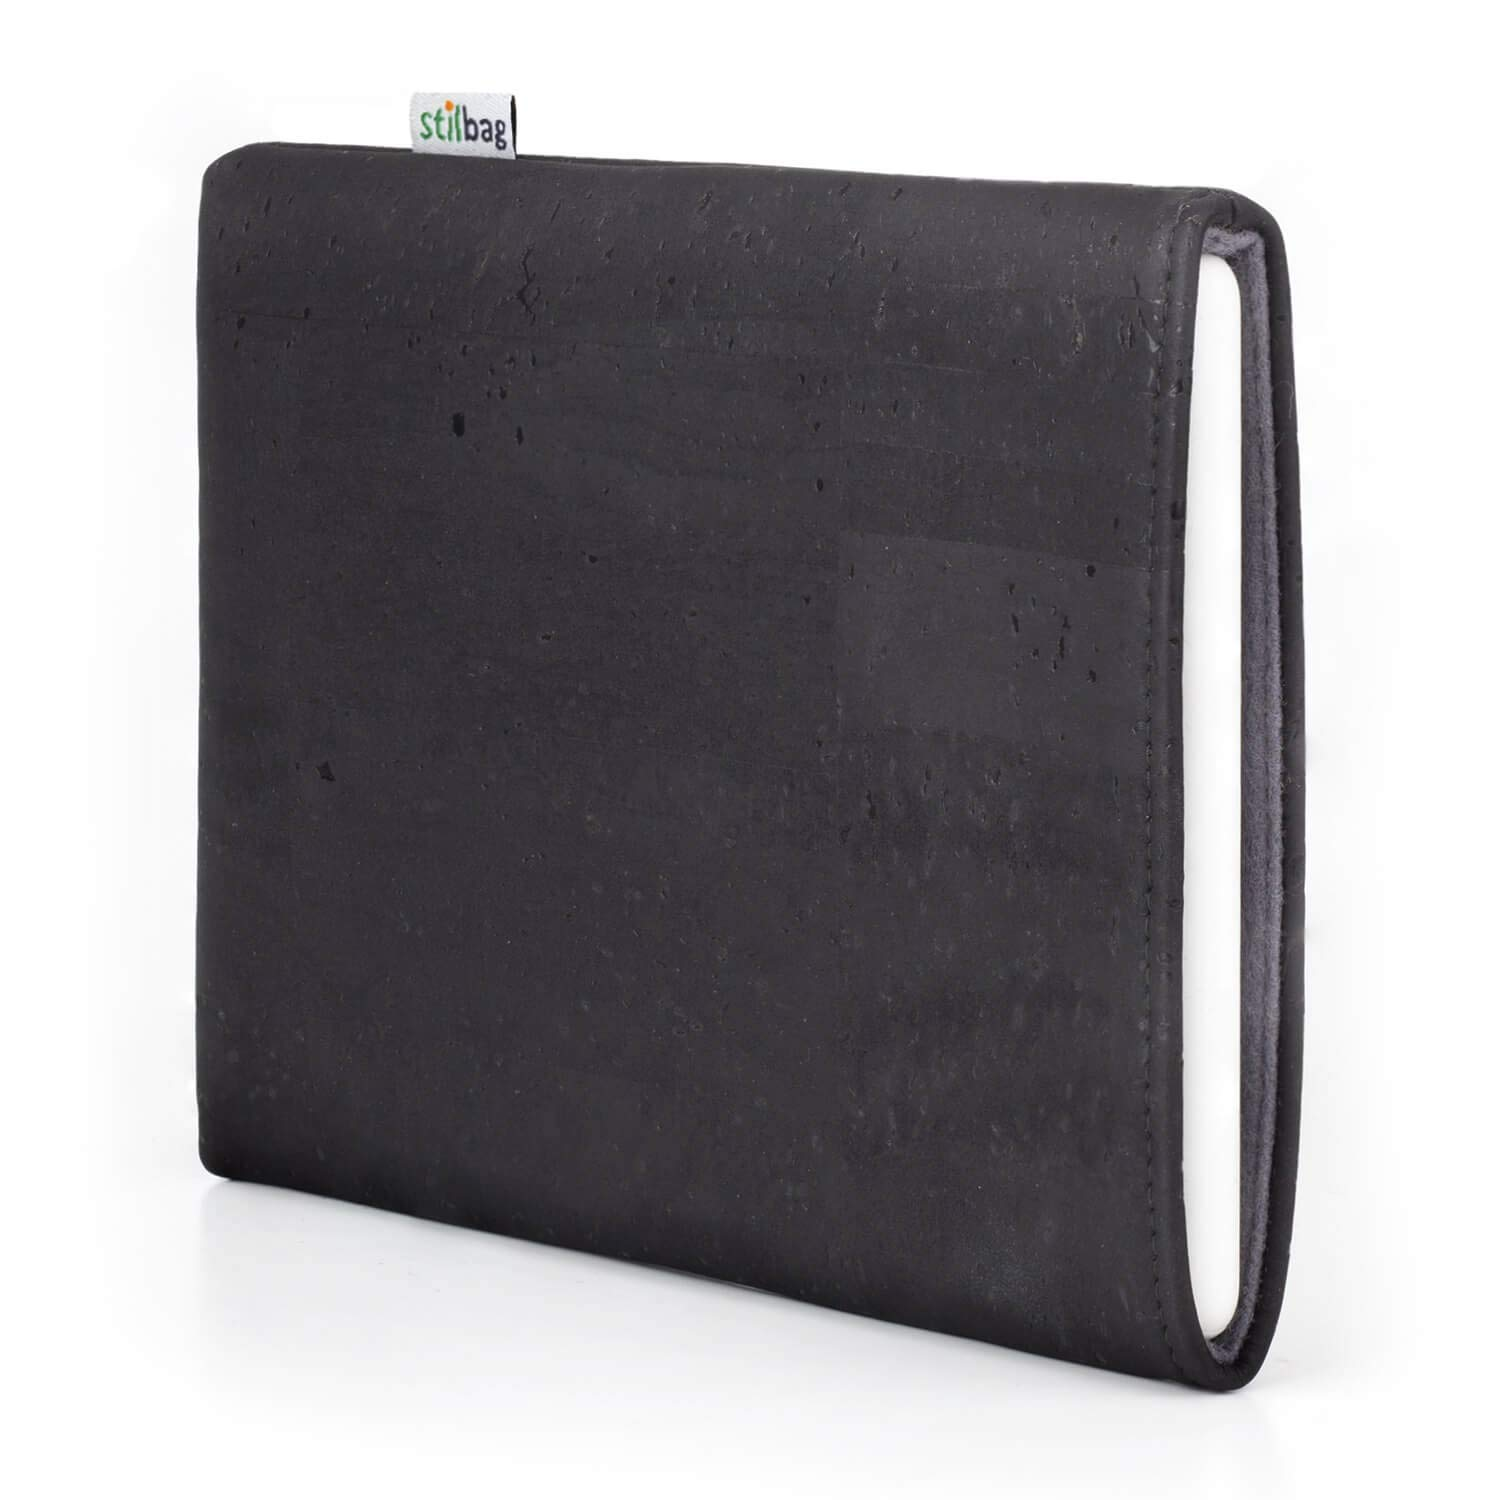 Funda Stilbag eReader Vigo para Energy Sistem eReader Screenlight ...